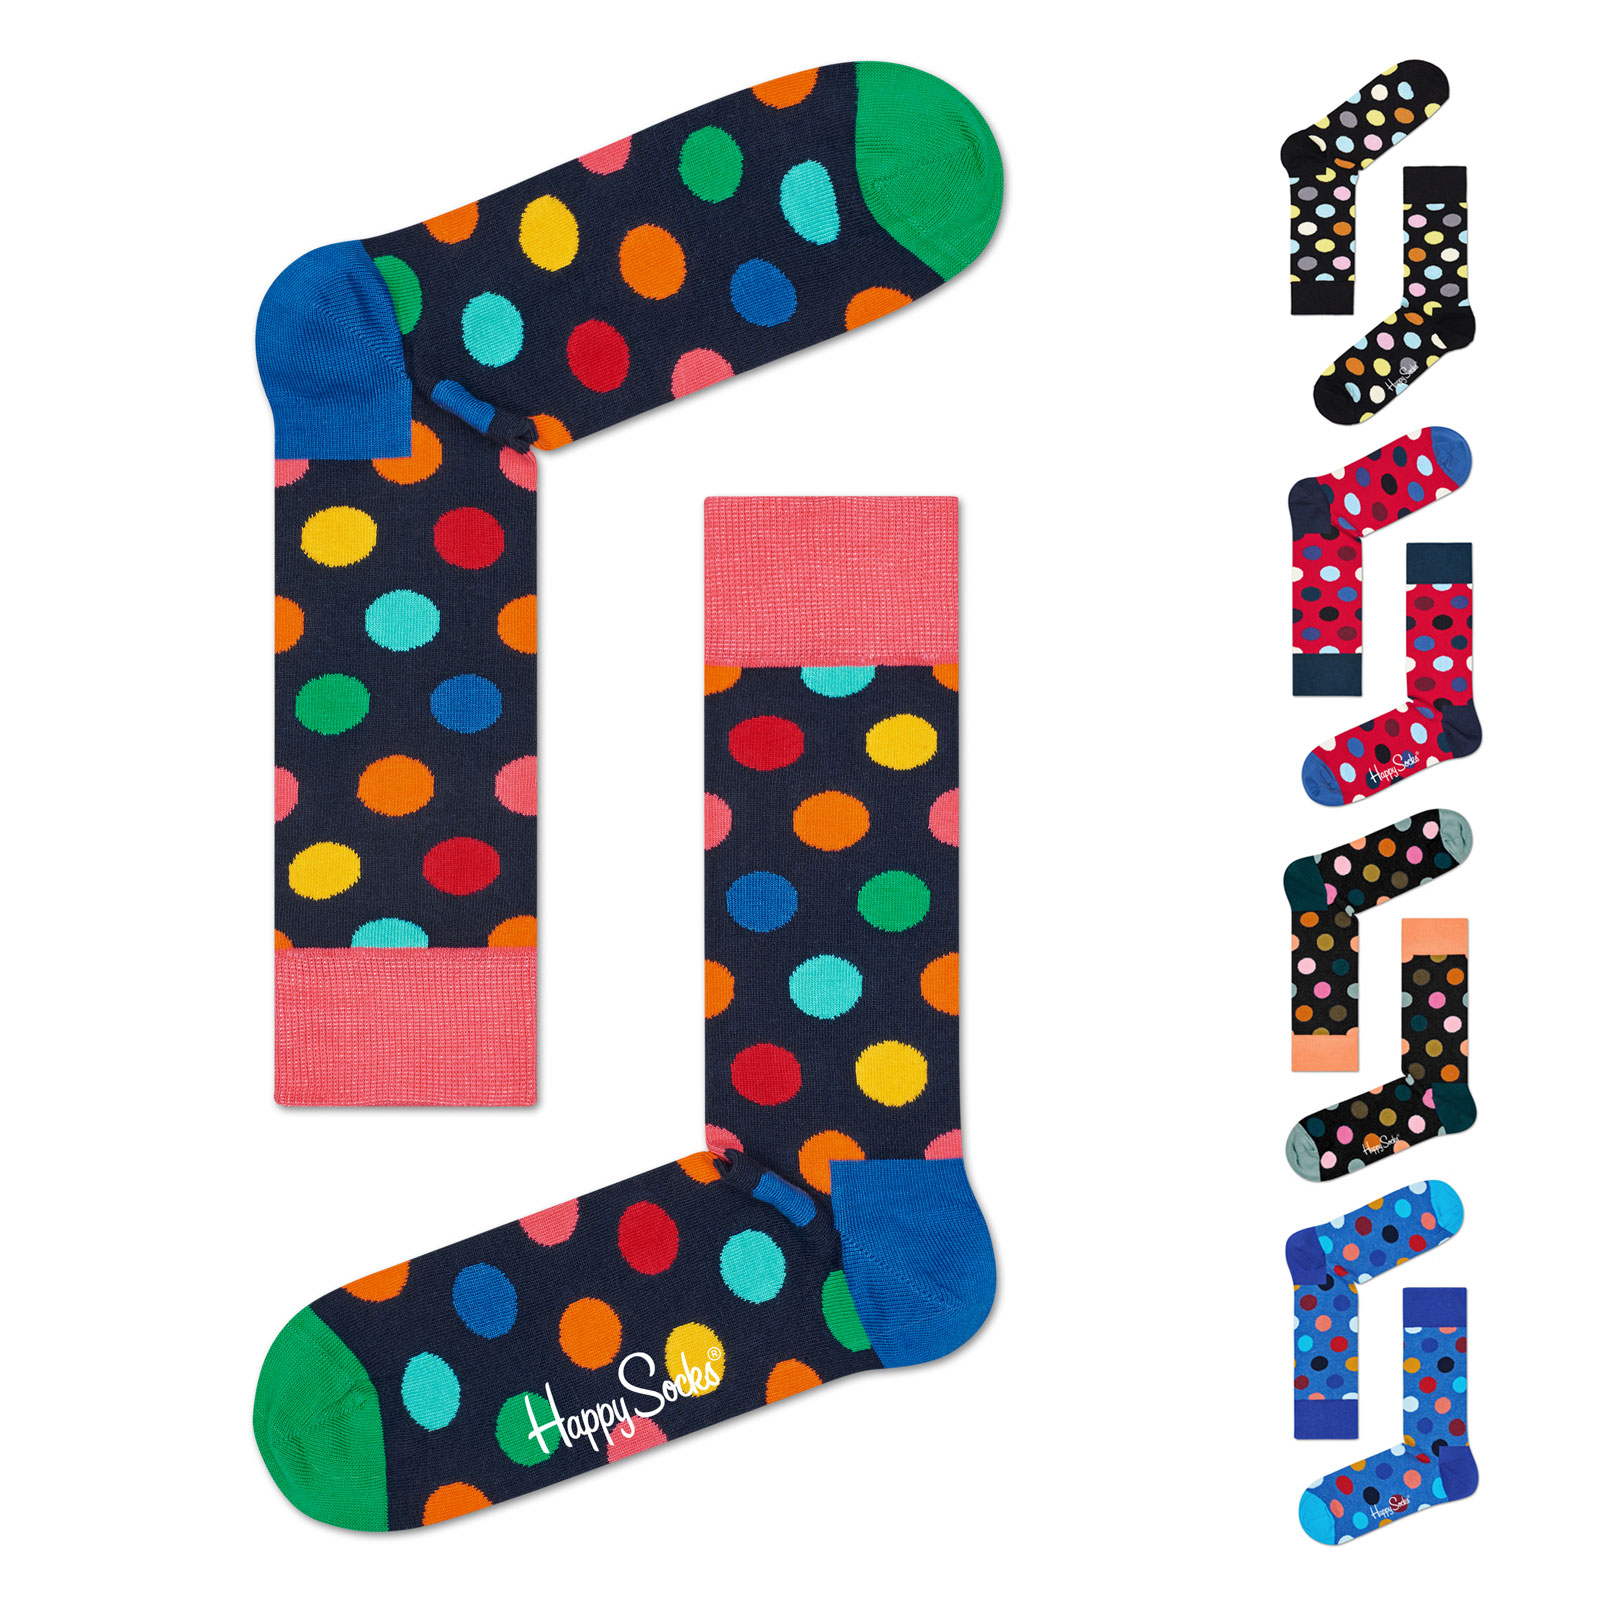 Happy Socks Unisex Socken Strümpfe Big Dot BDO01 36/40 41/46 in multi petrol vergrößern